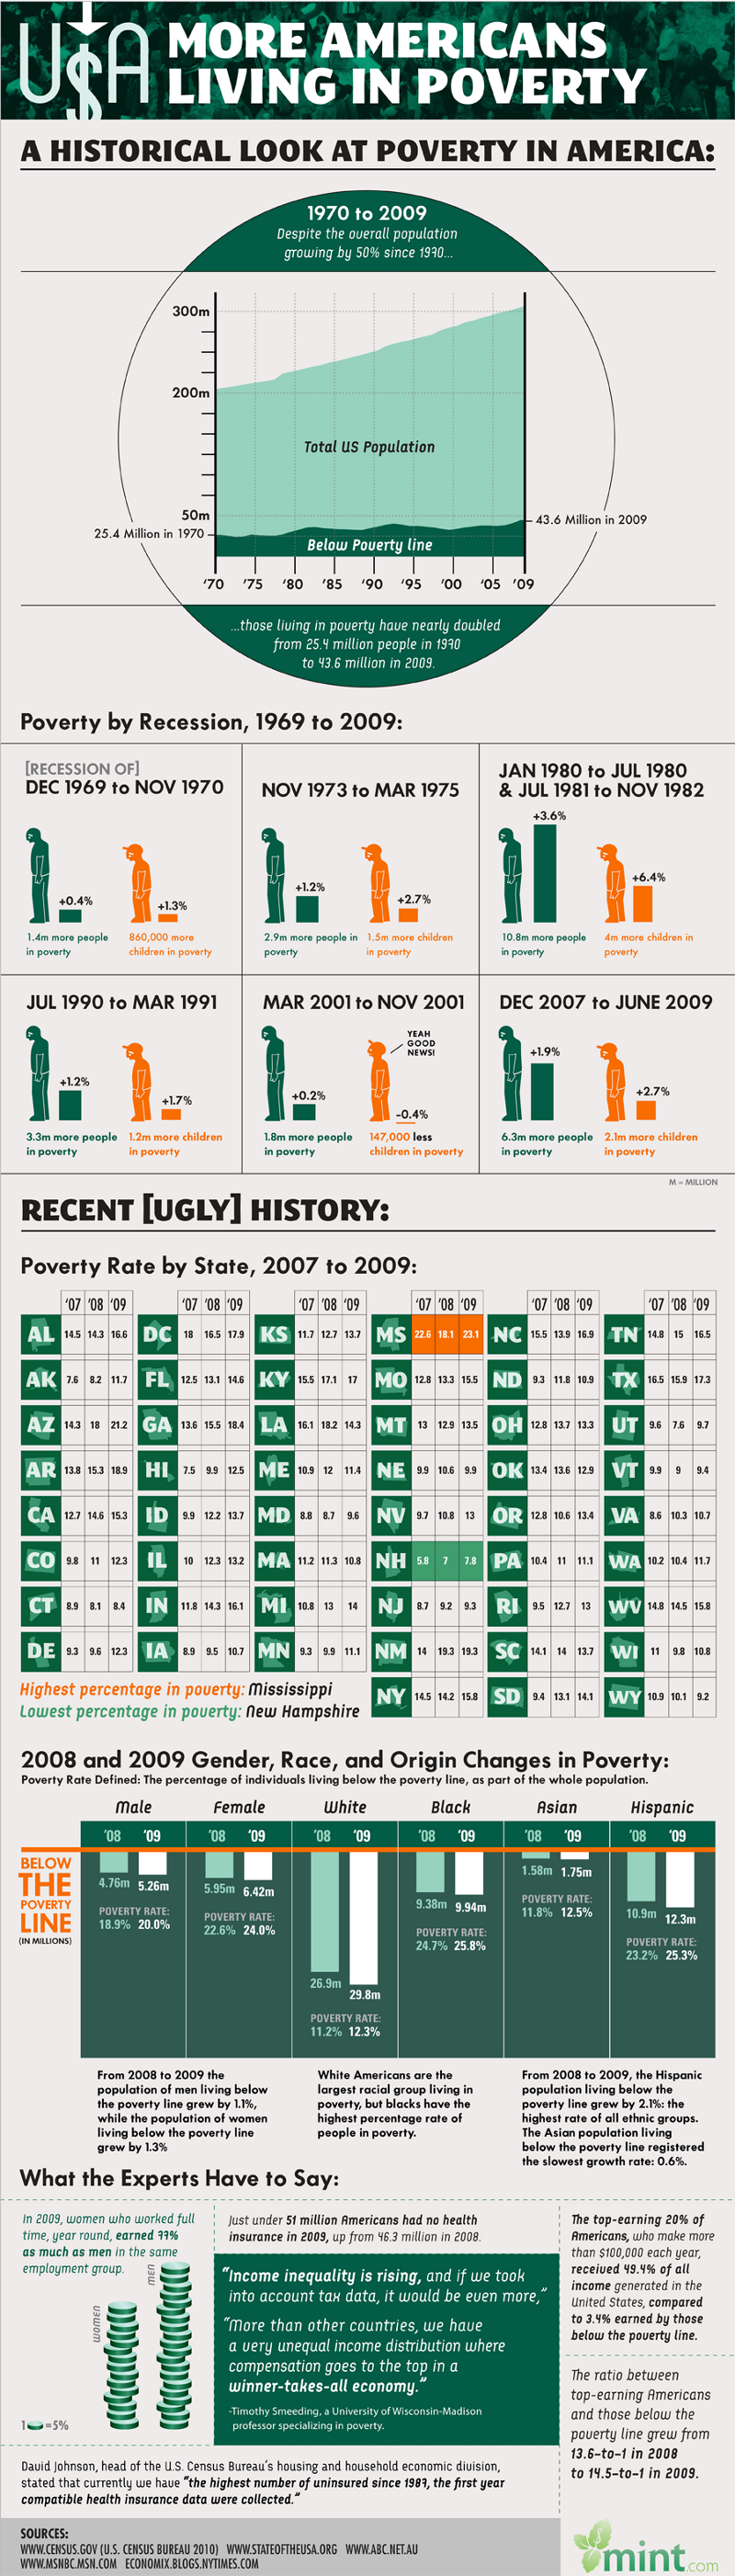 United States Poverty Facts